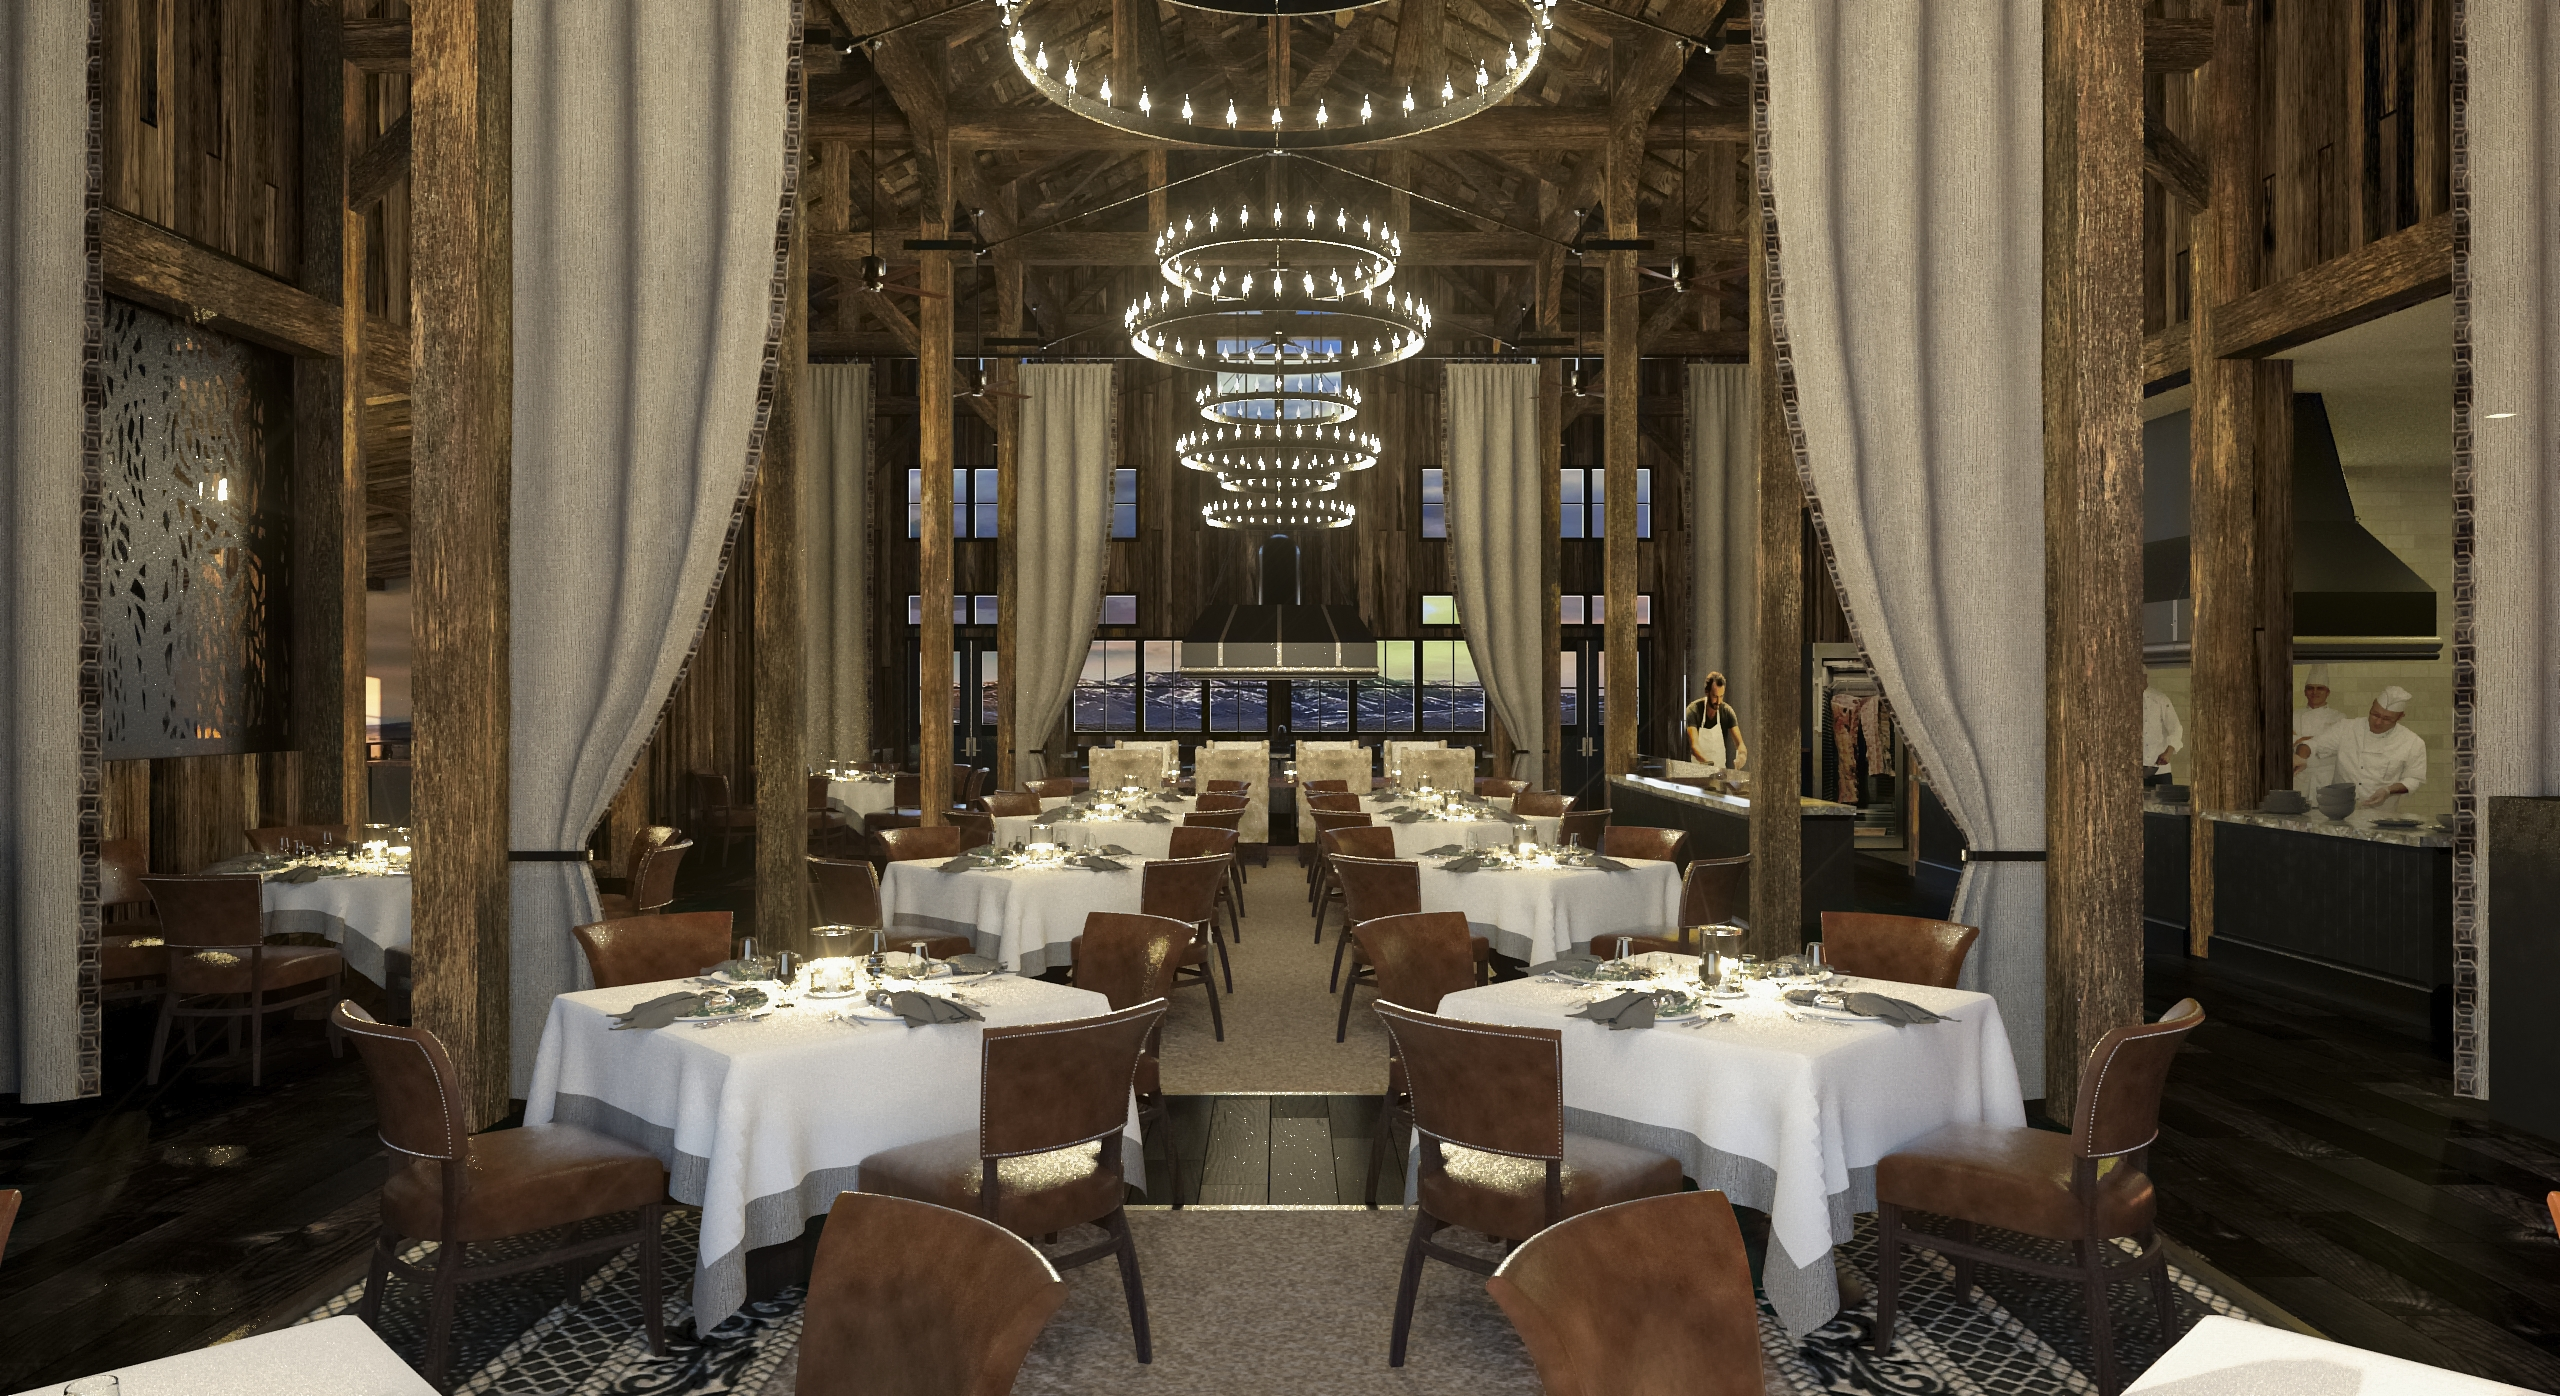 The interior of the luxury Cheyenne Club dining room at The Brush Creek Ranch